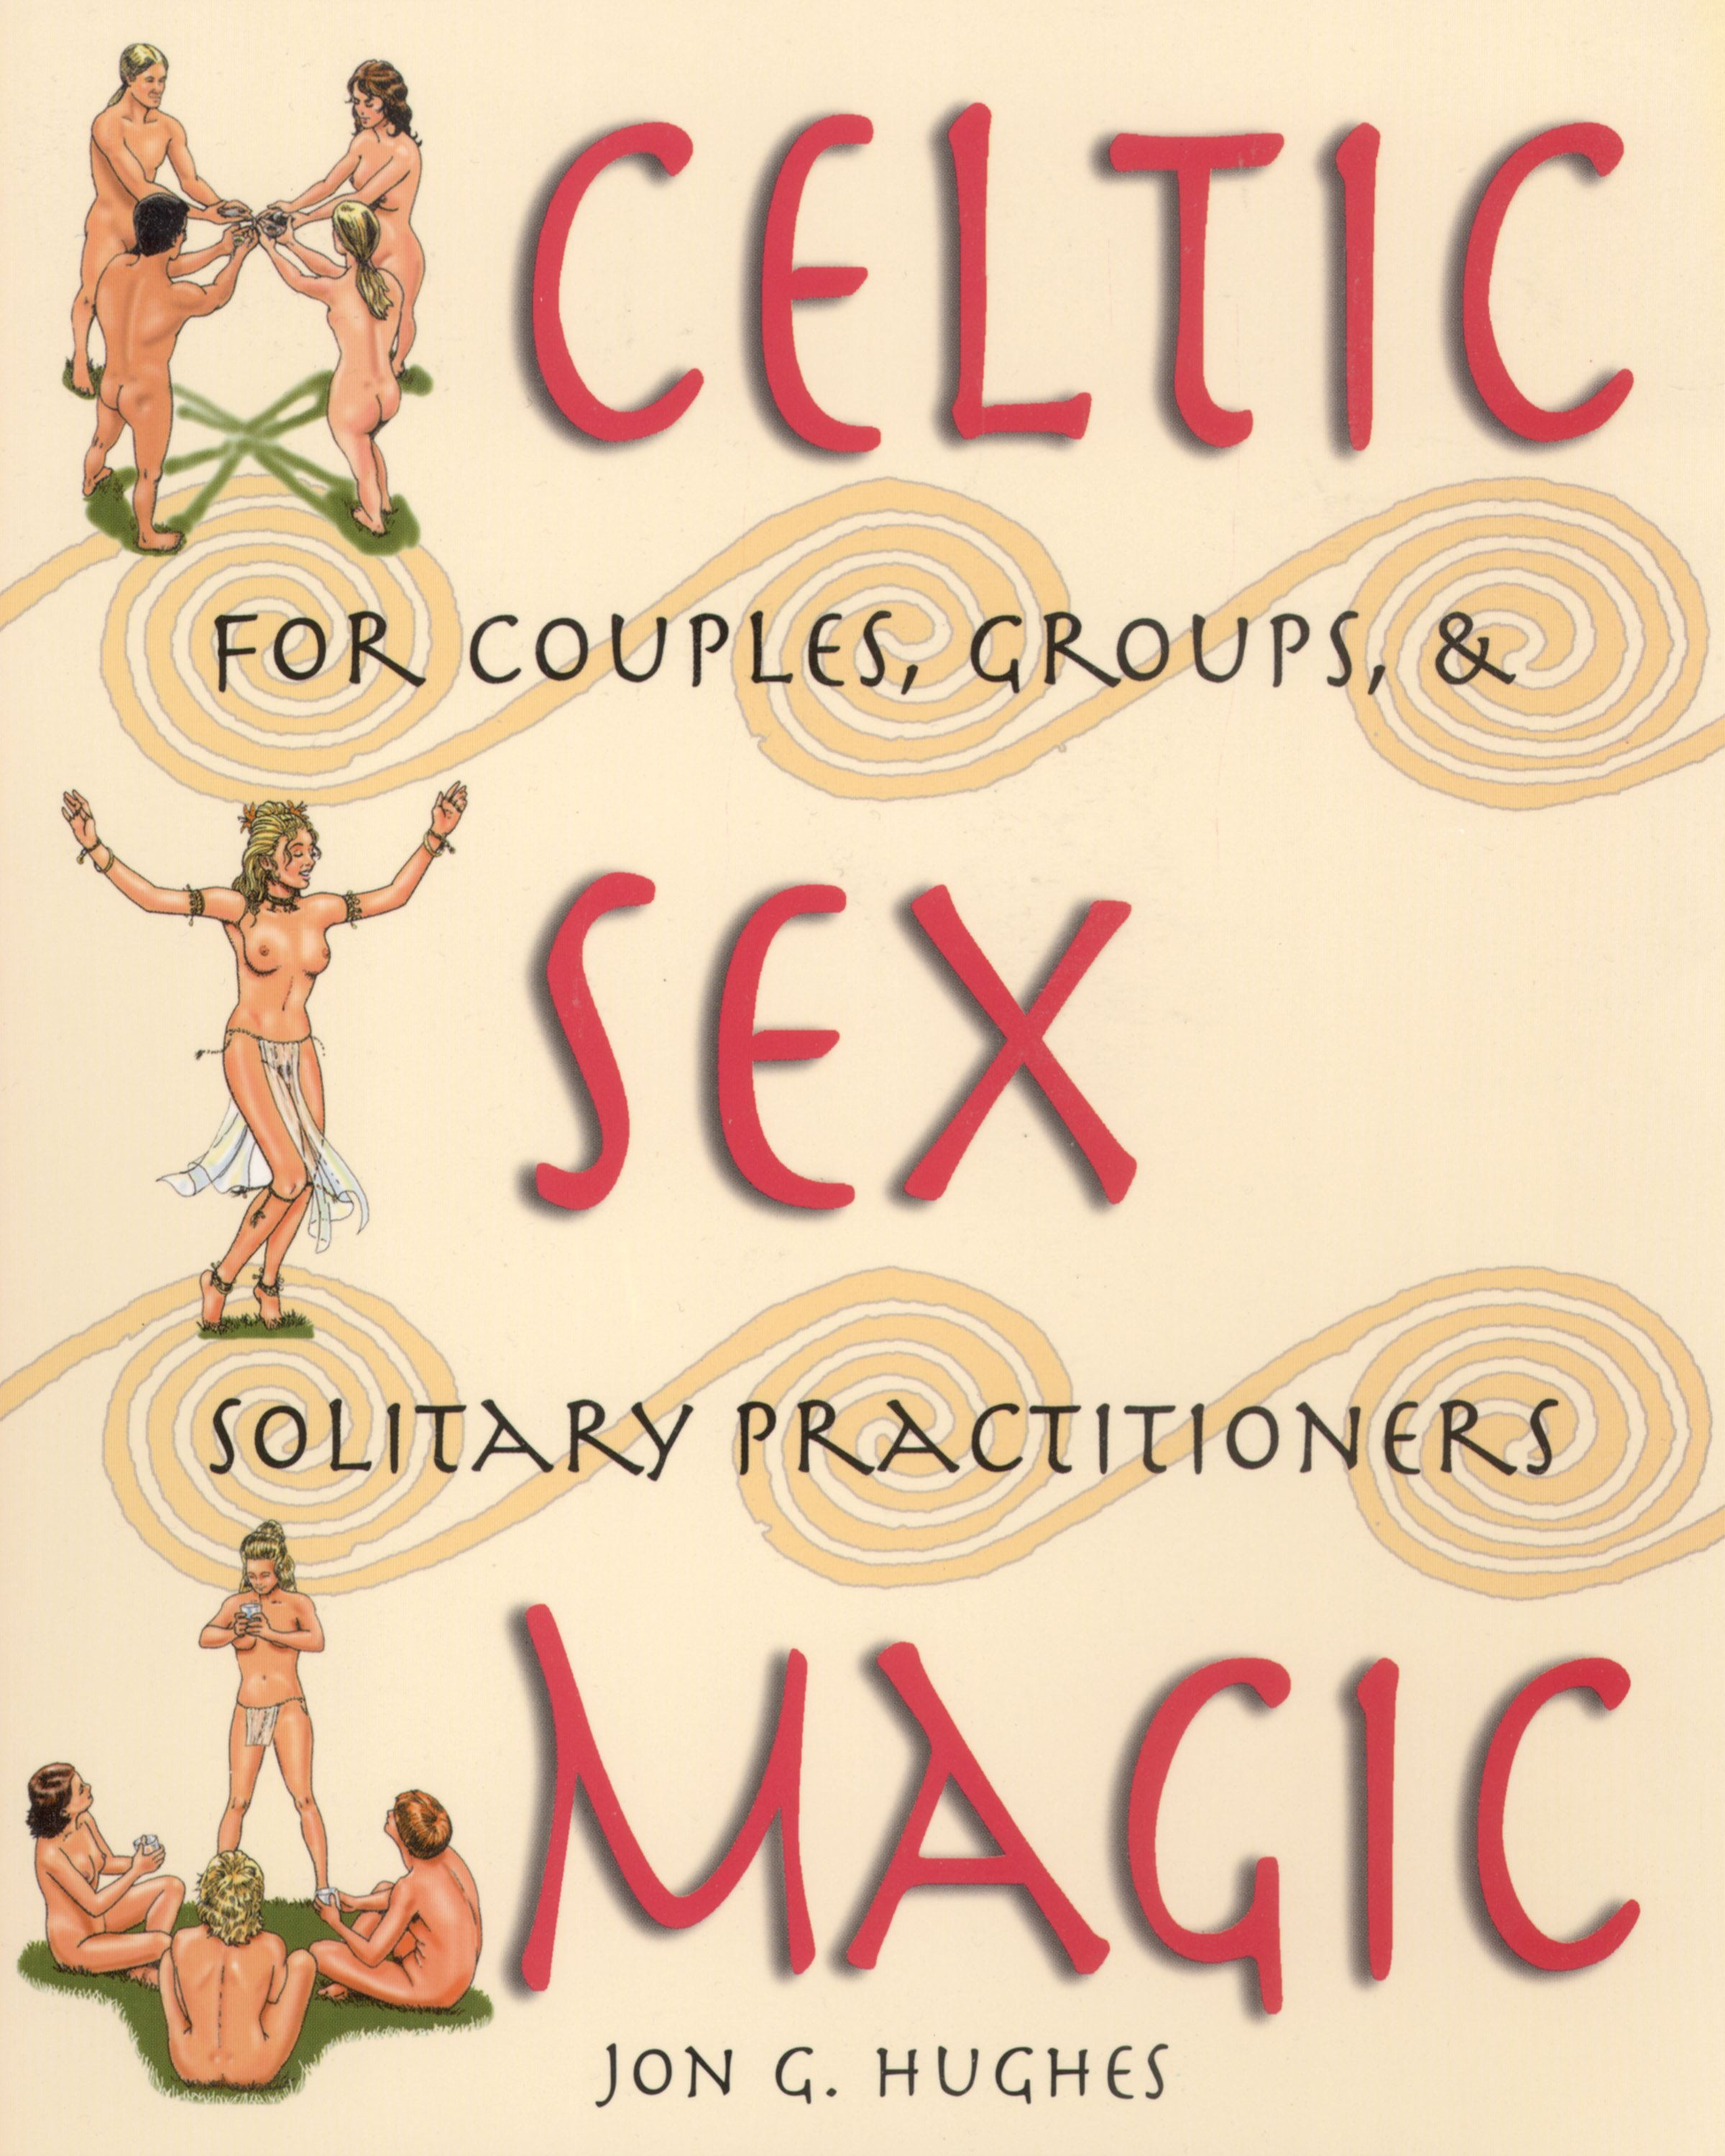 Celtic-sex-magic-9780892819089_hr